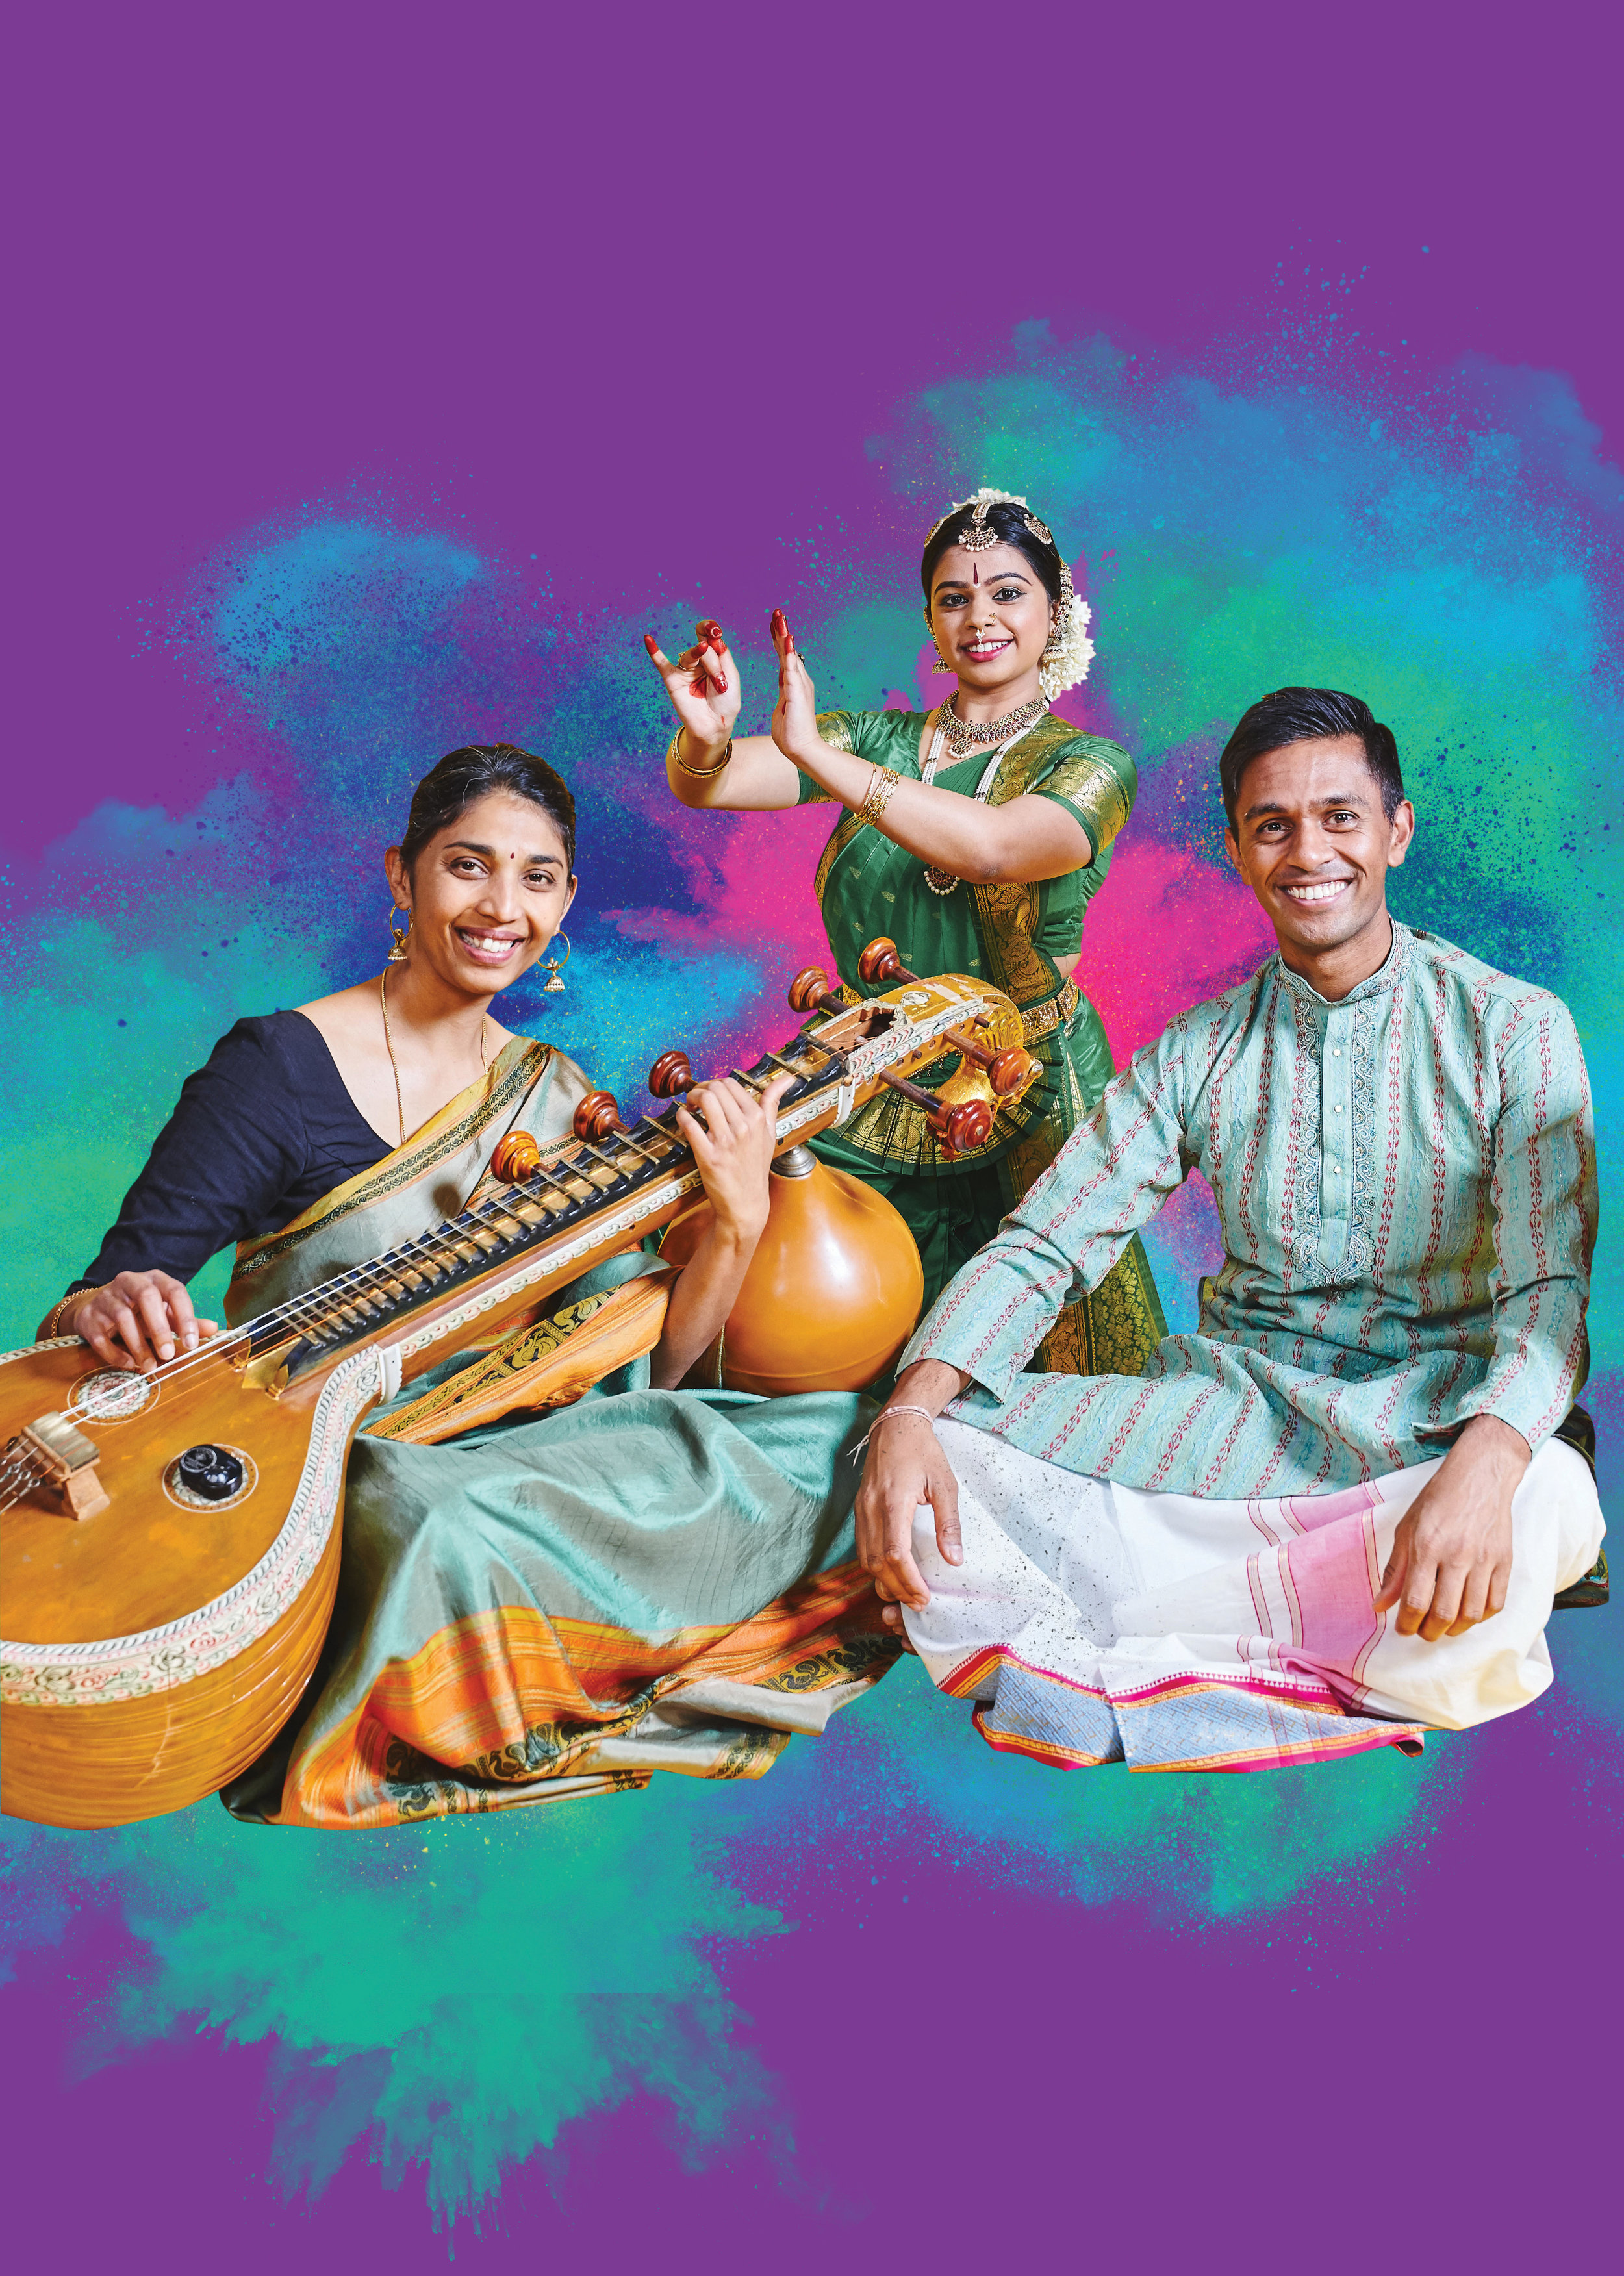 Following on from the success of Ātma: Music and Movement (2017) and Bhakti: Art and Devotion (2018) staged for the festival, Arjunan Puveendran (voice, mridangam) and Indu Balachandran (veena) present Bhoomi: Woman and Earth. The recital weaves ancient texts and traditions into the lens of contemporary society to present themes that are more vital than ever—the feminine and the environment. The event will draw on a combination of music, dance, spoken word and ritual practice. SSMF 2019